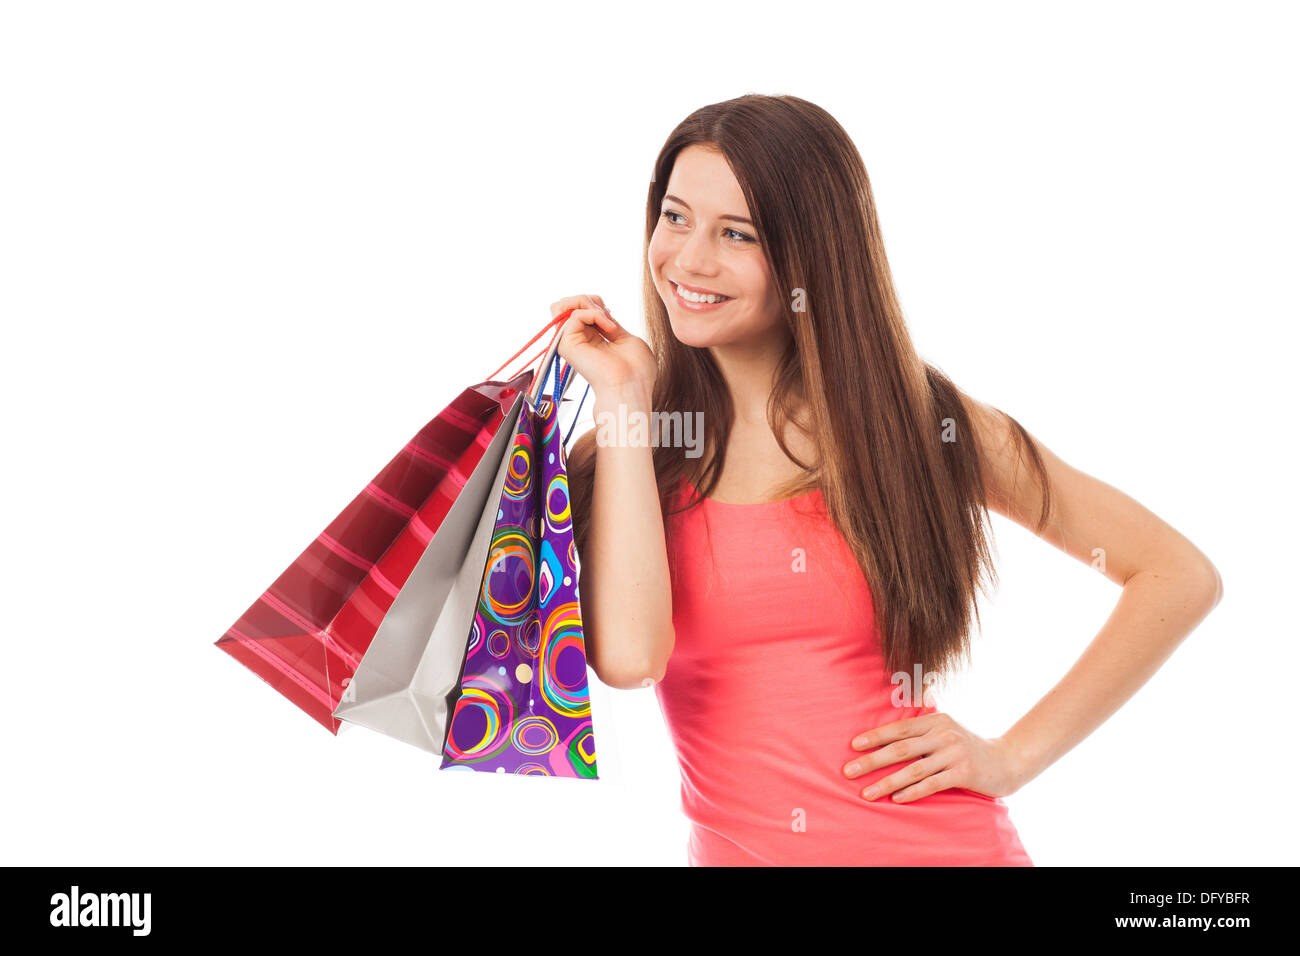 Nice brunette with a cute smile holding shopping bags, isolated on white - Stock Image